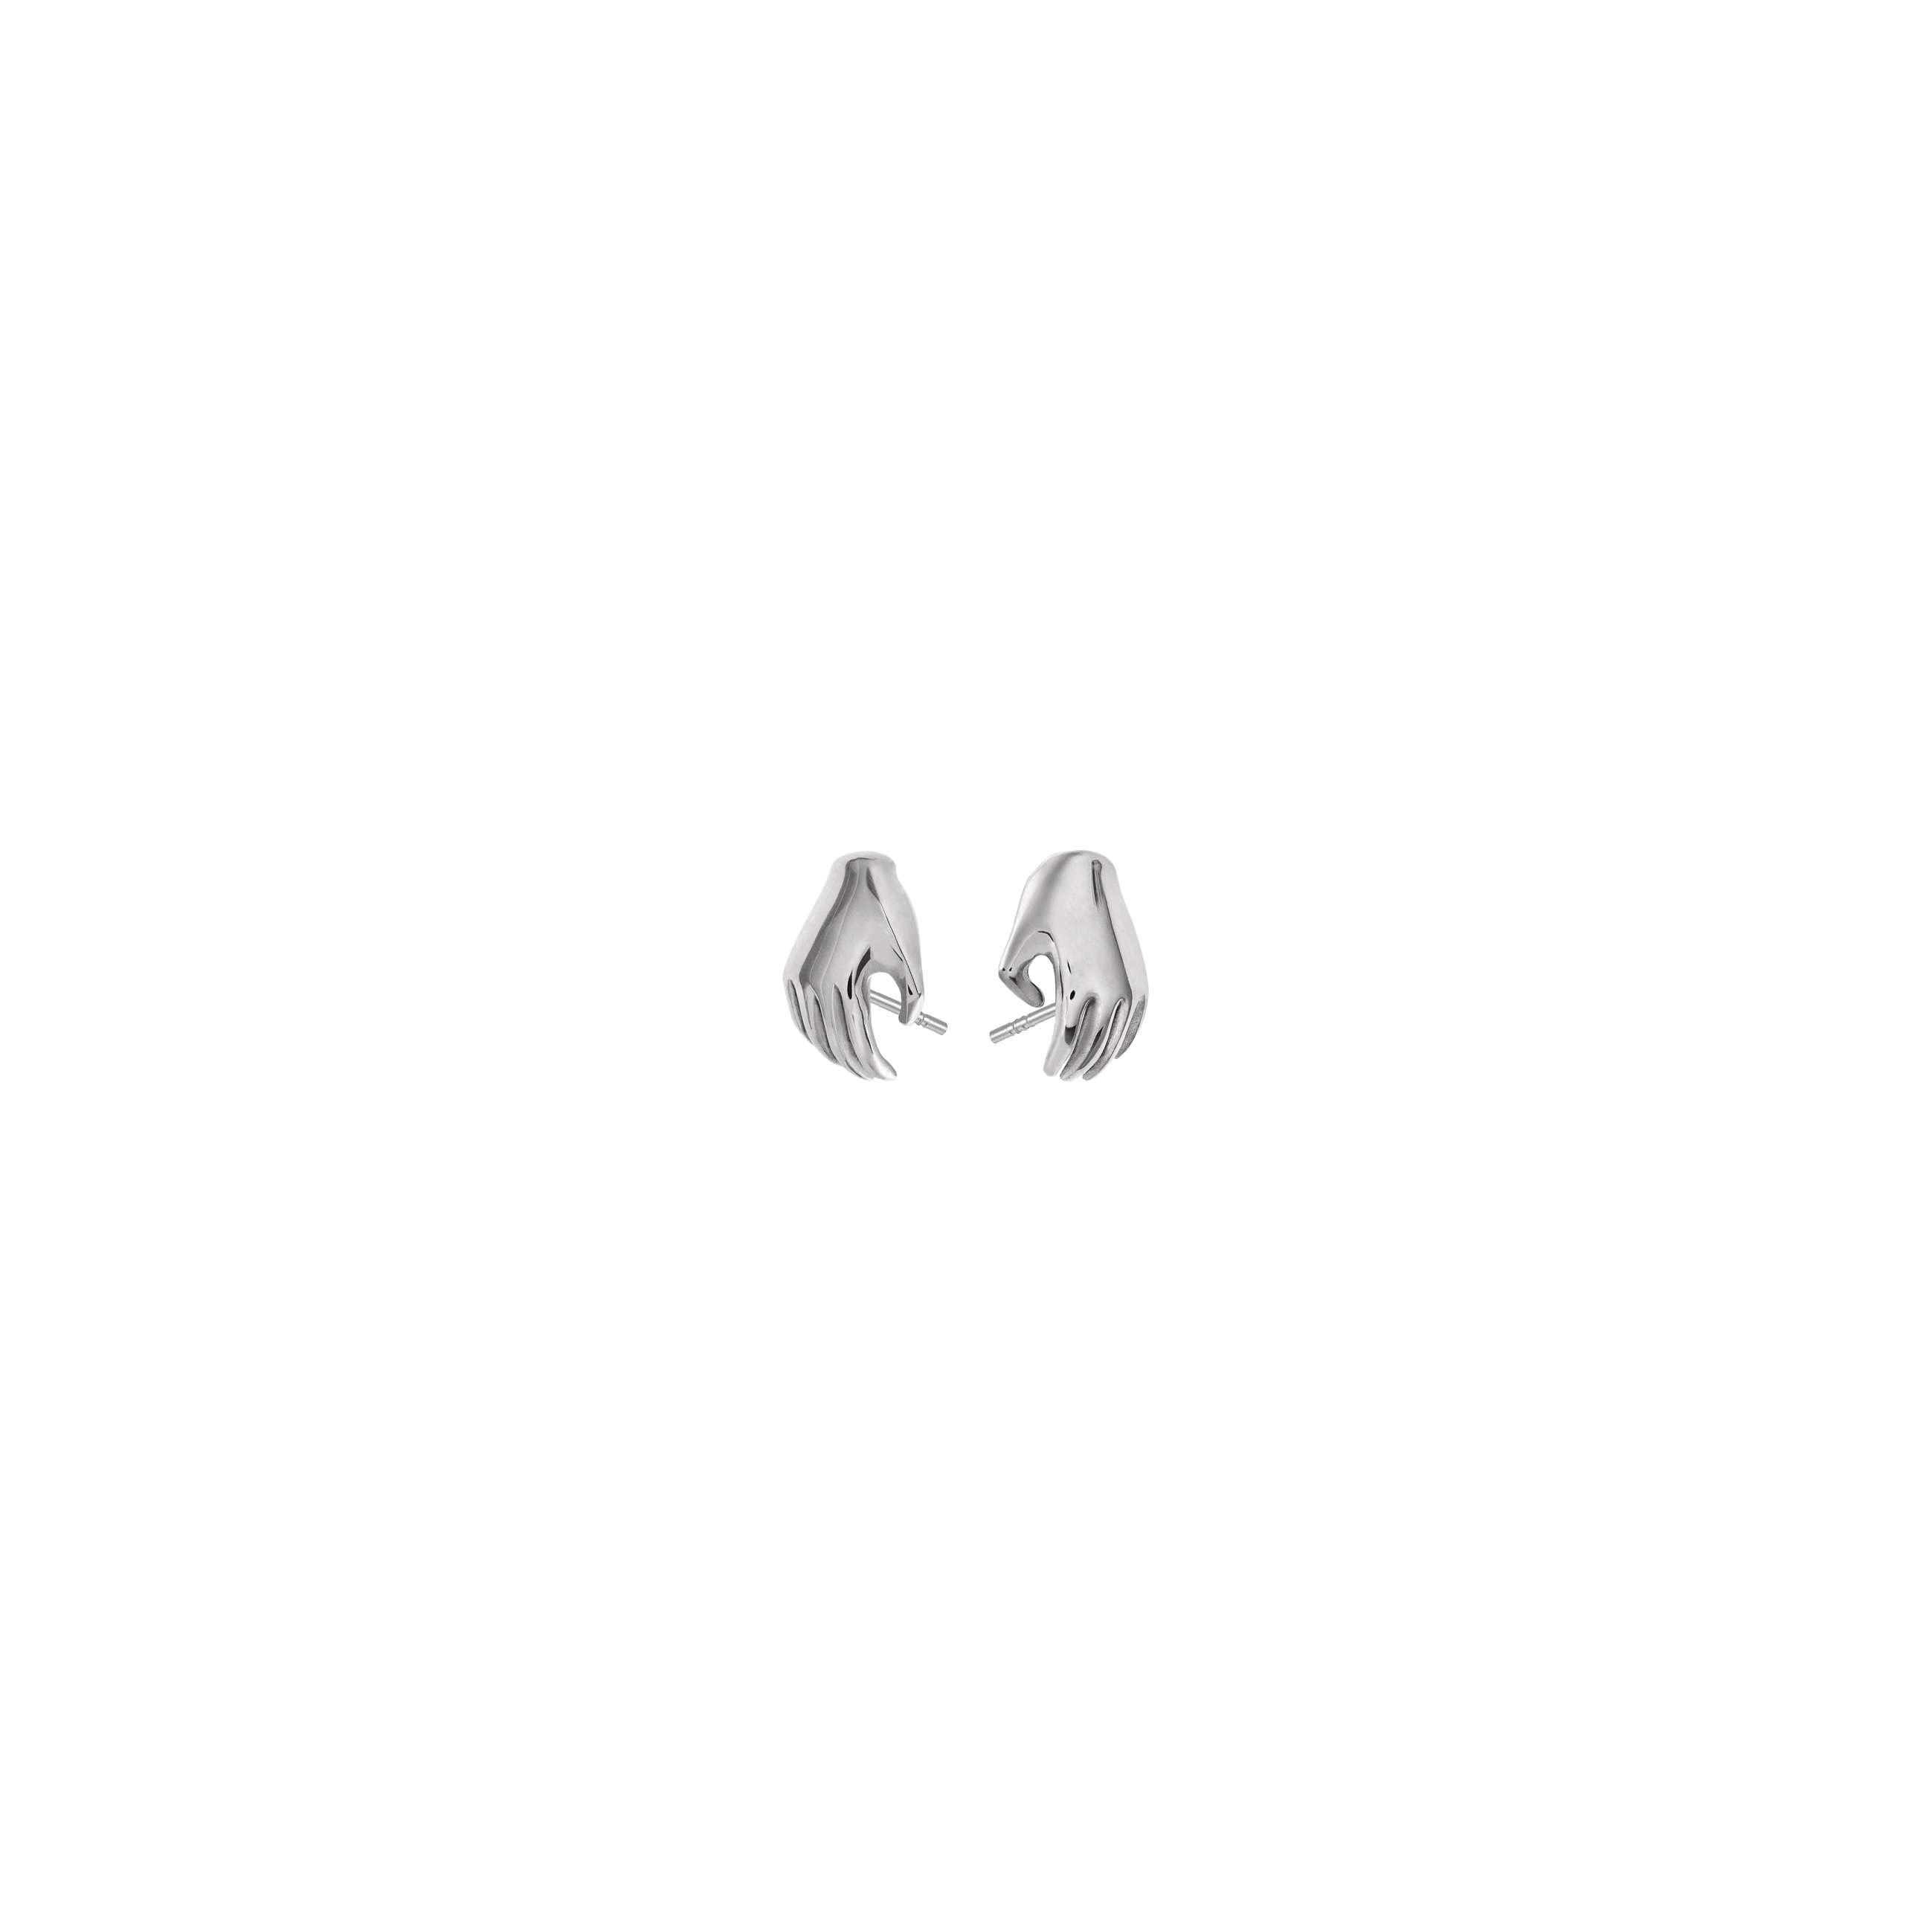 HAND EARRINGS 3D SILVER